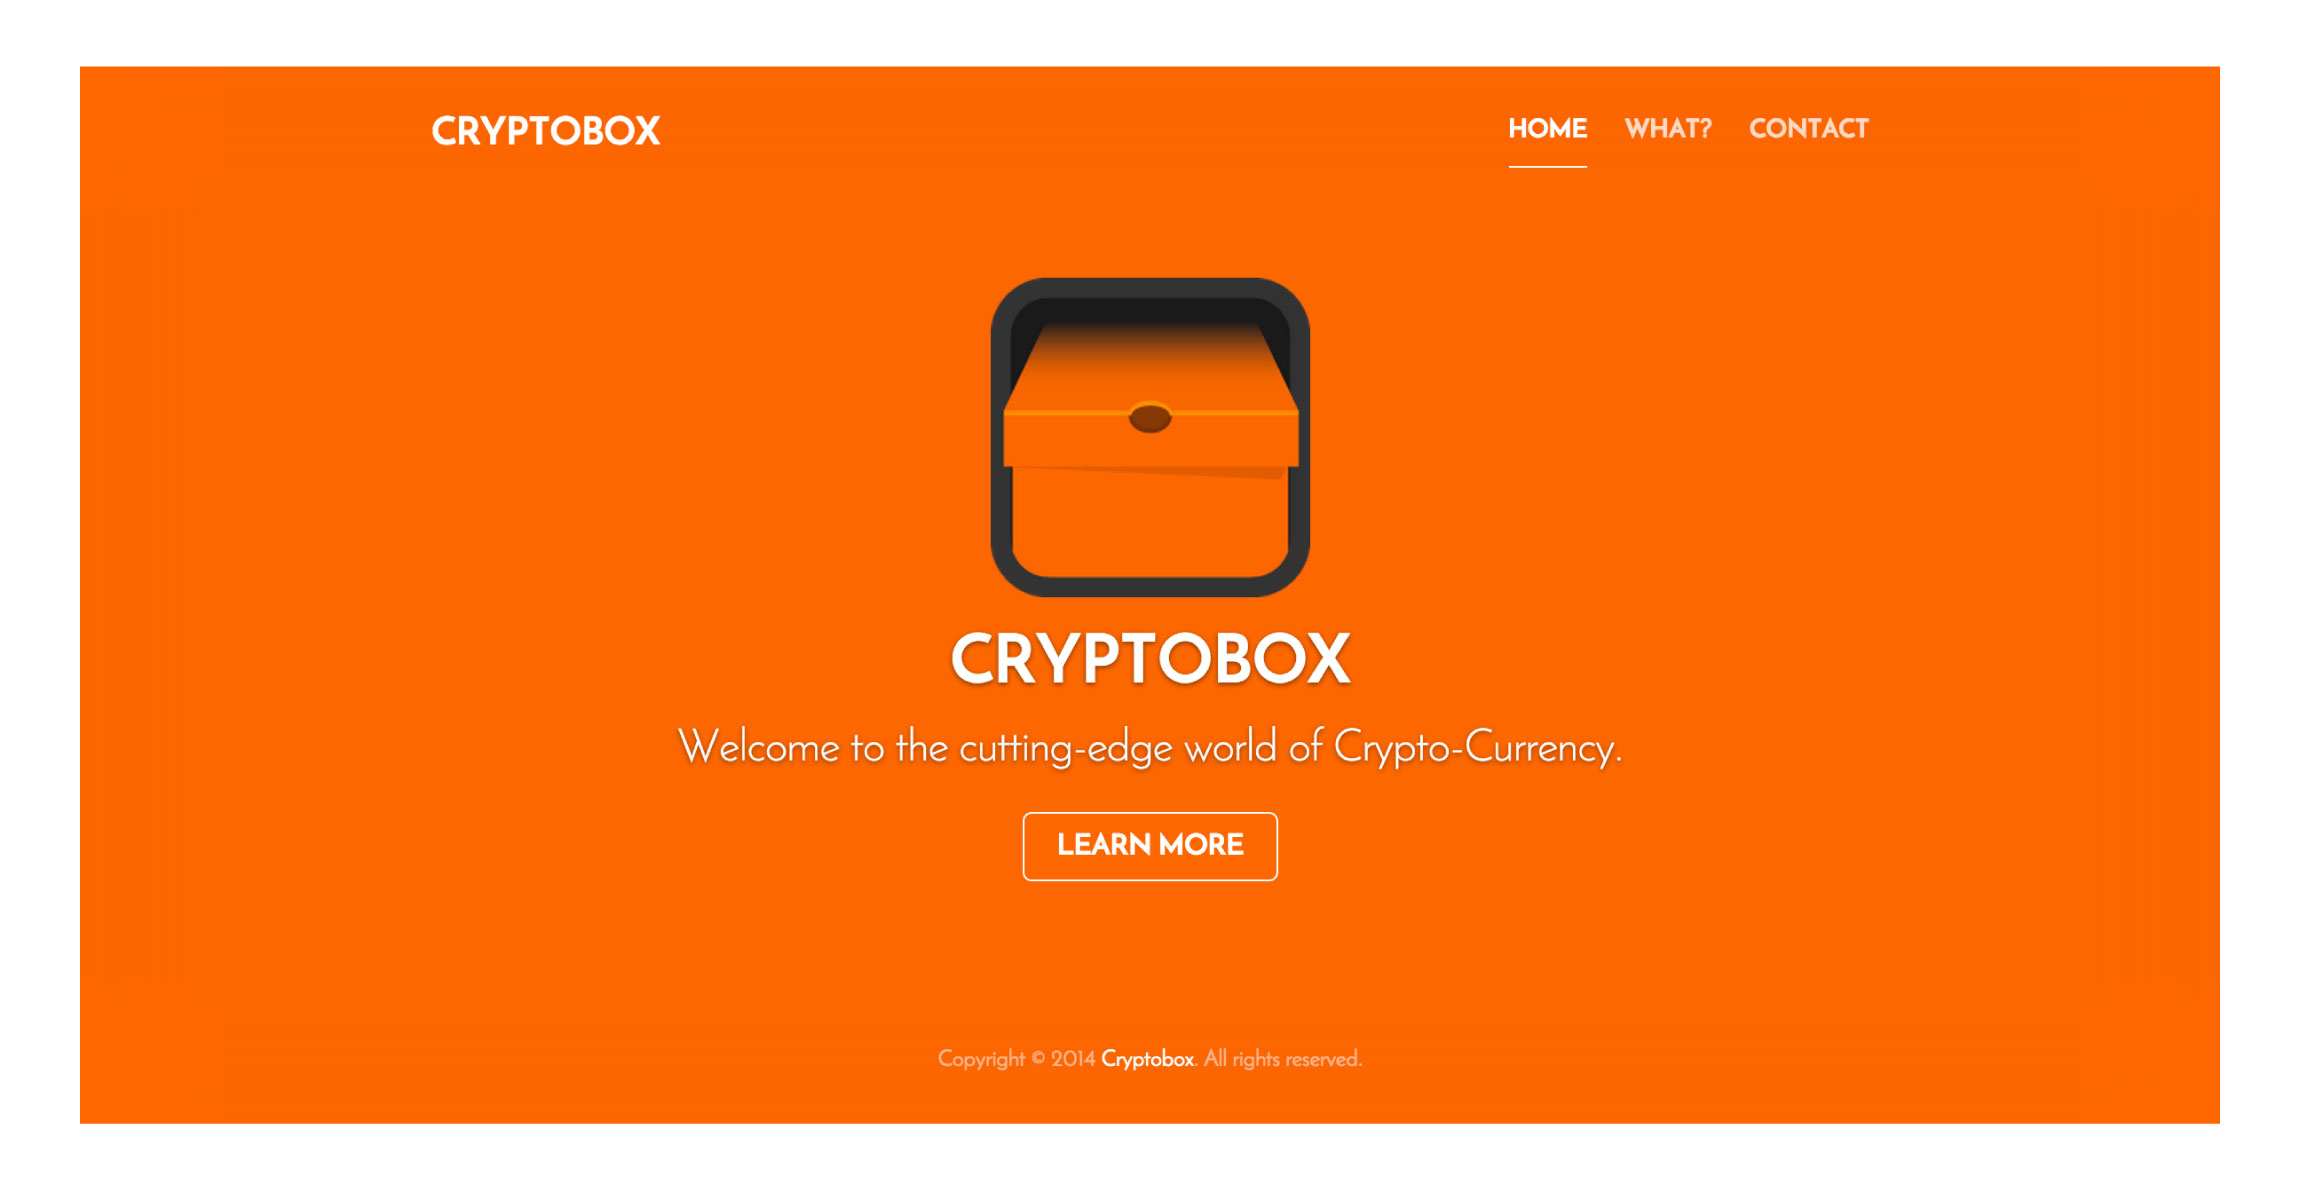 Cryptobox Homepage